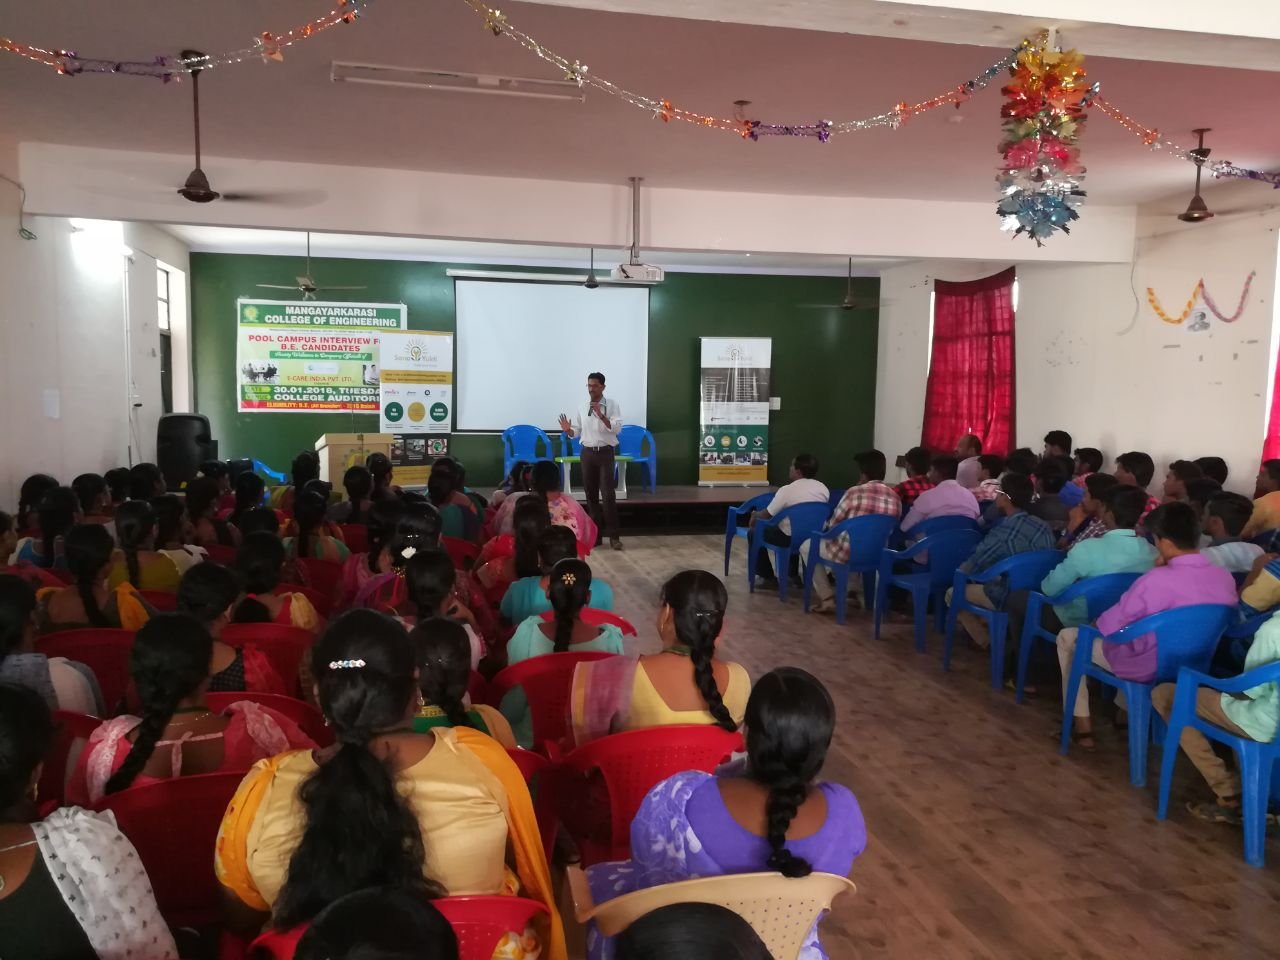 Sona Yukti's soft skills training workshop at Mangayarkarasi College of Engineering, Madurai